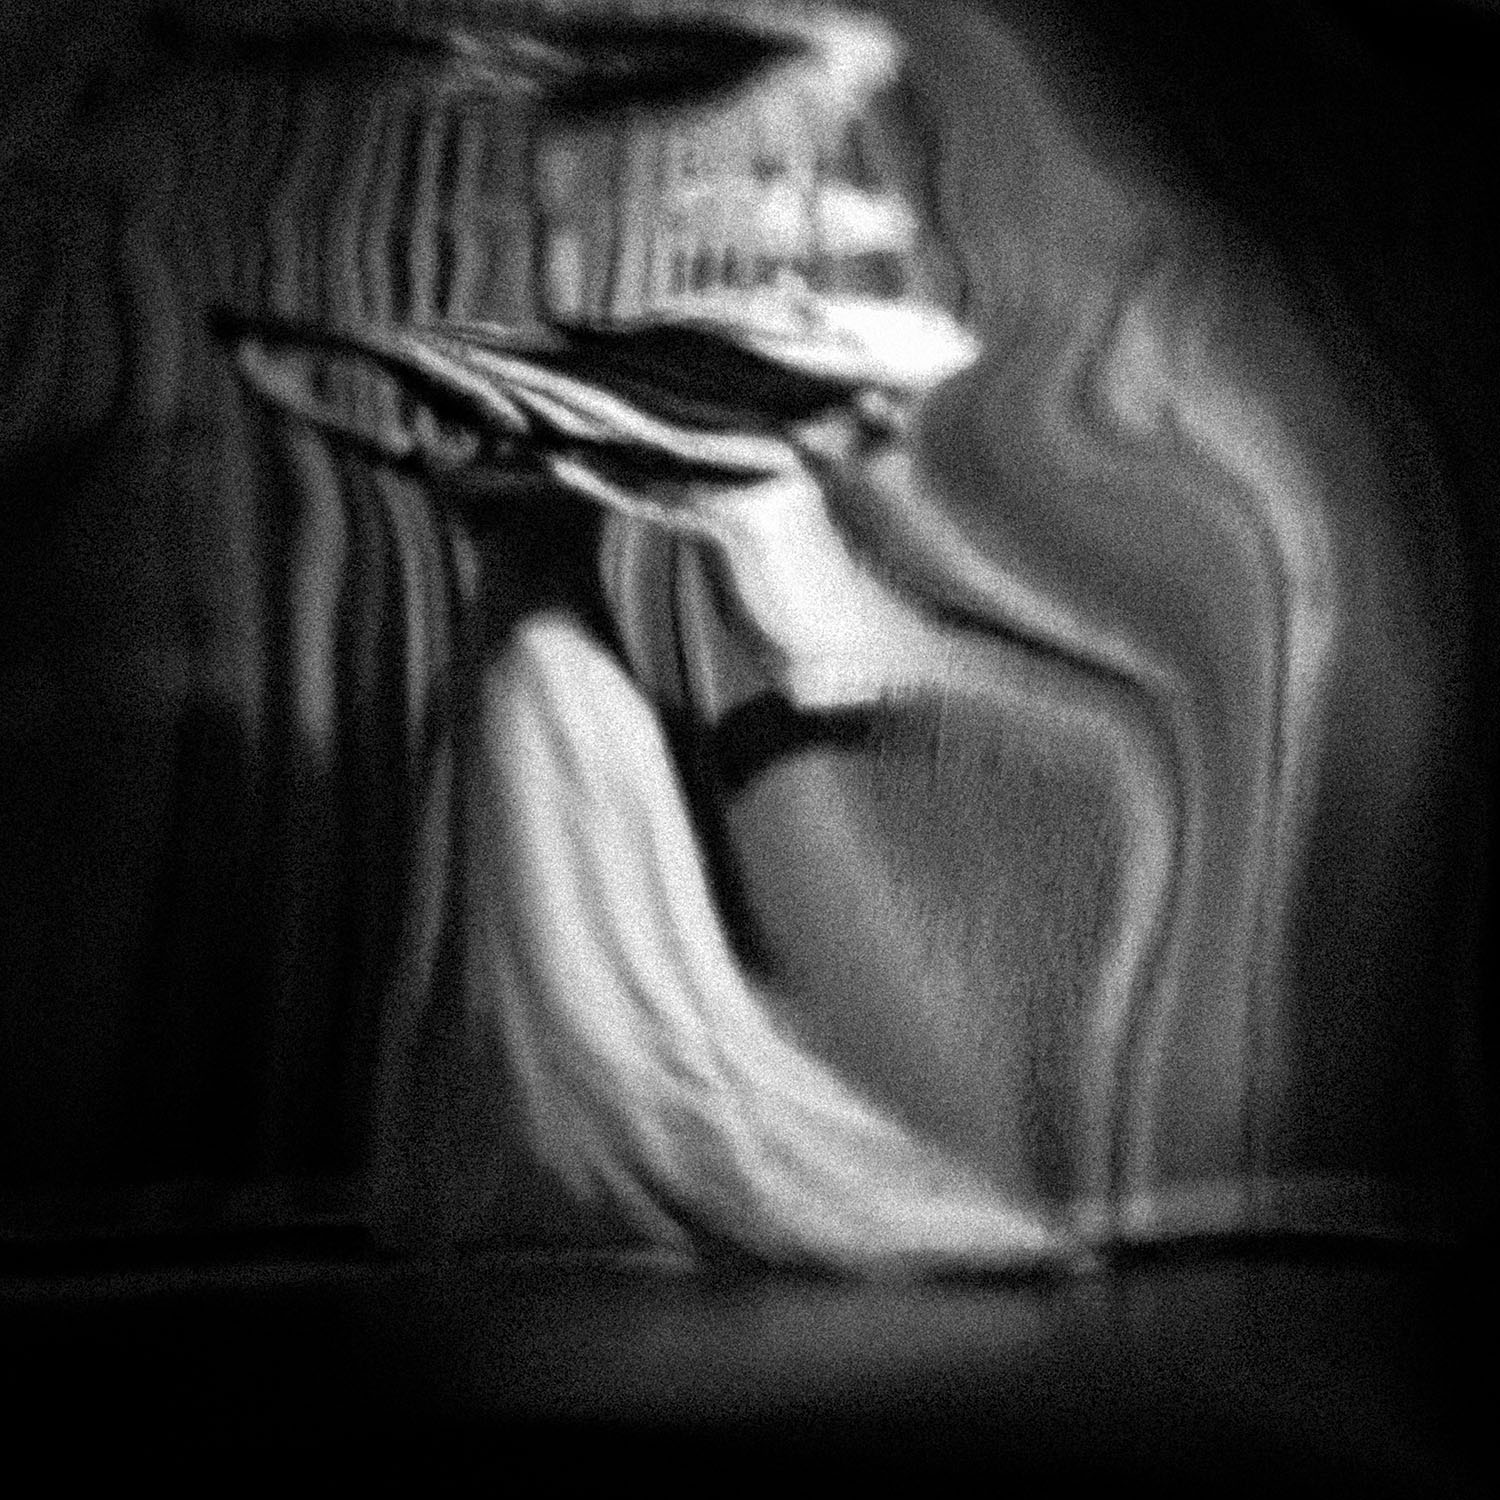 DIstortion 32 2020 15 in x 15 in carbon pigment print